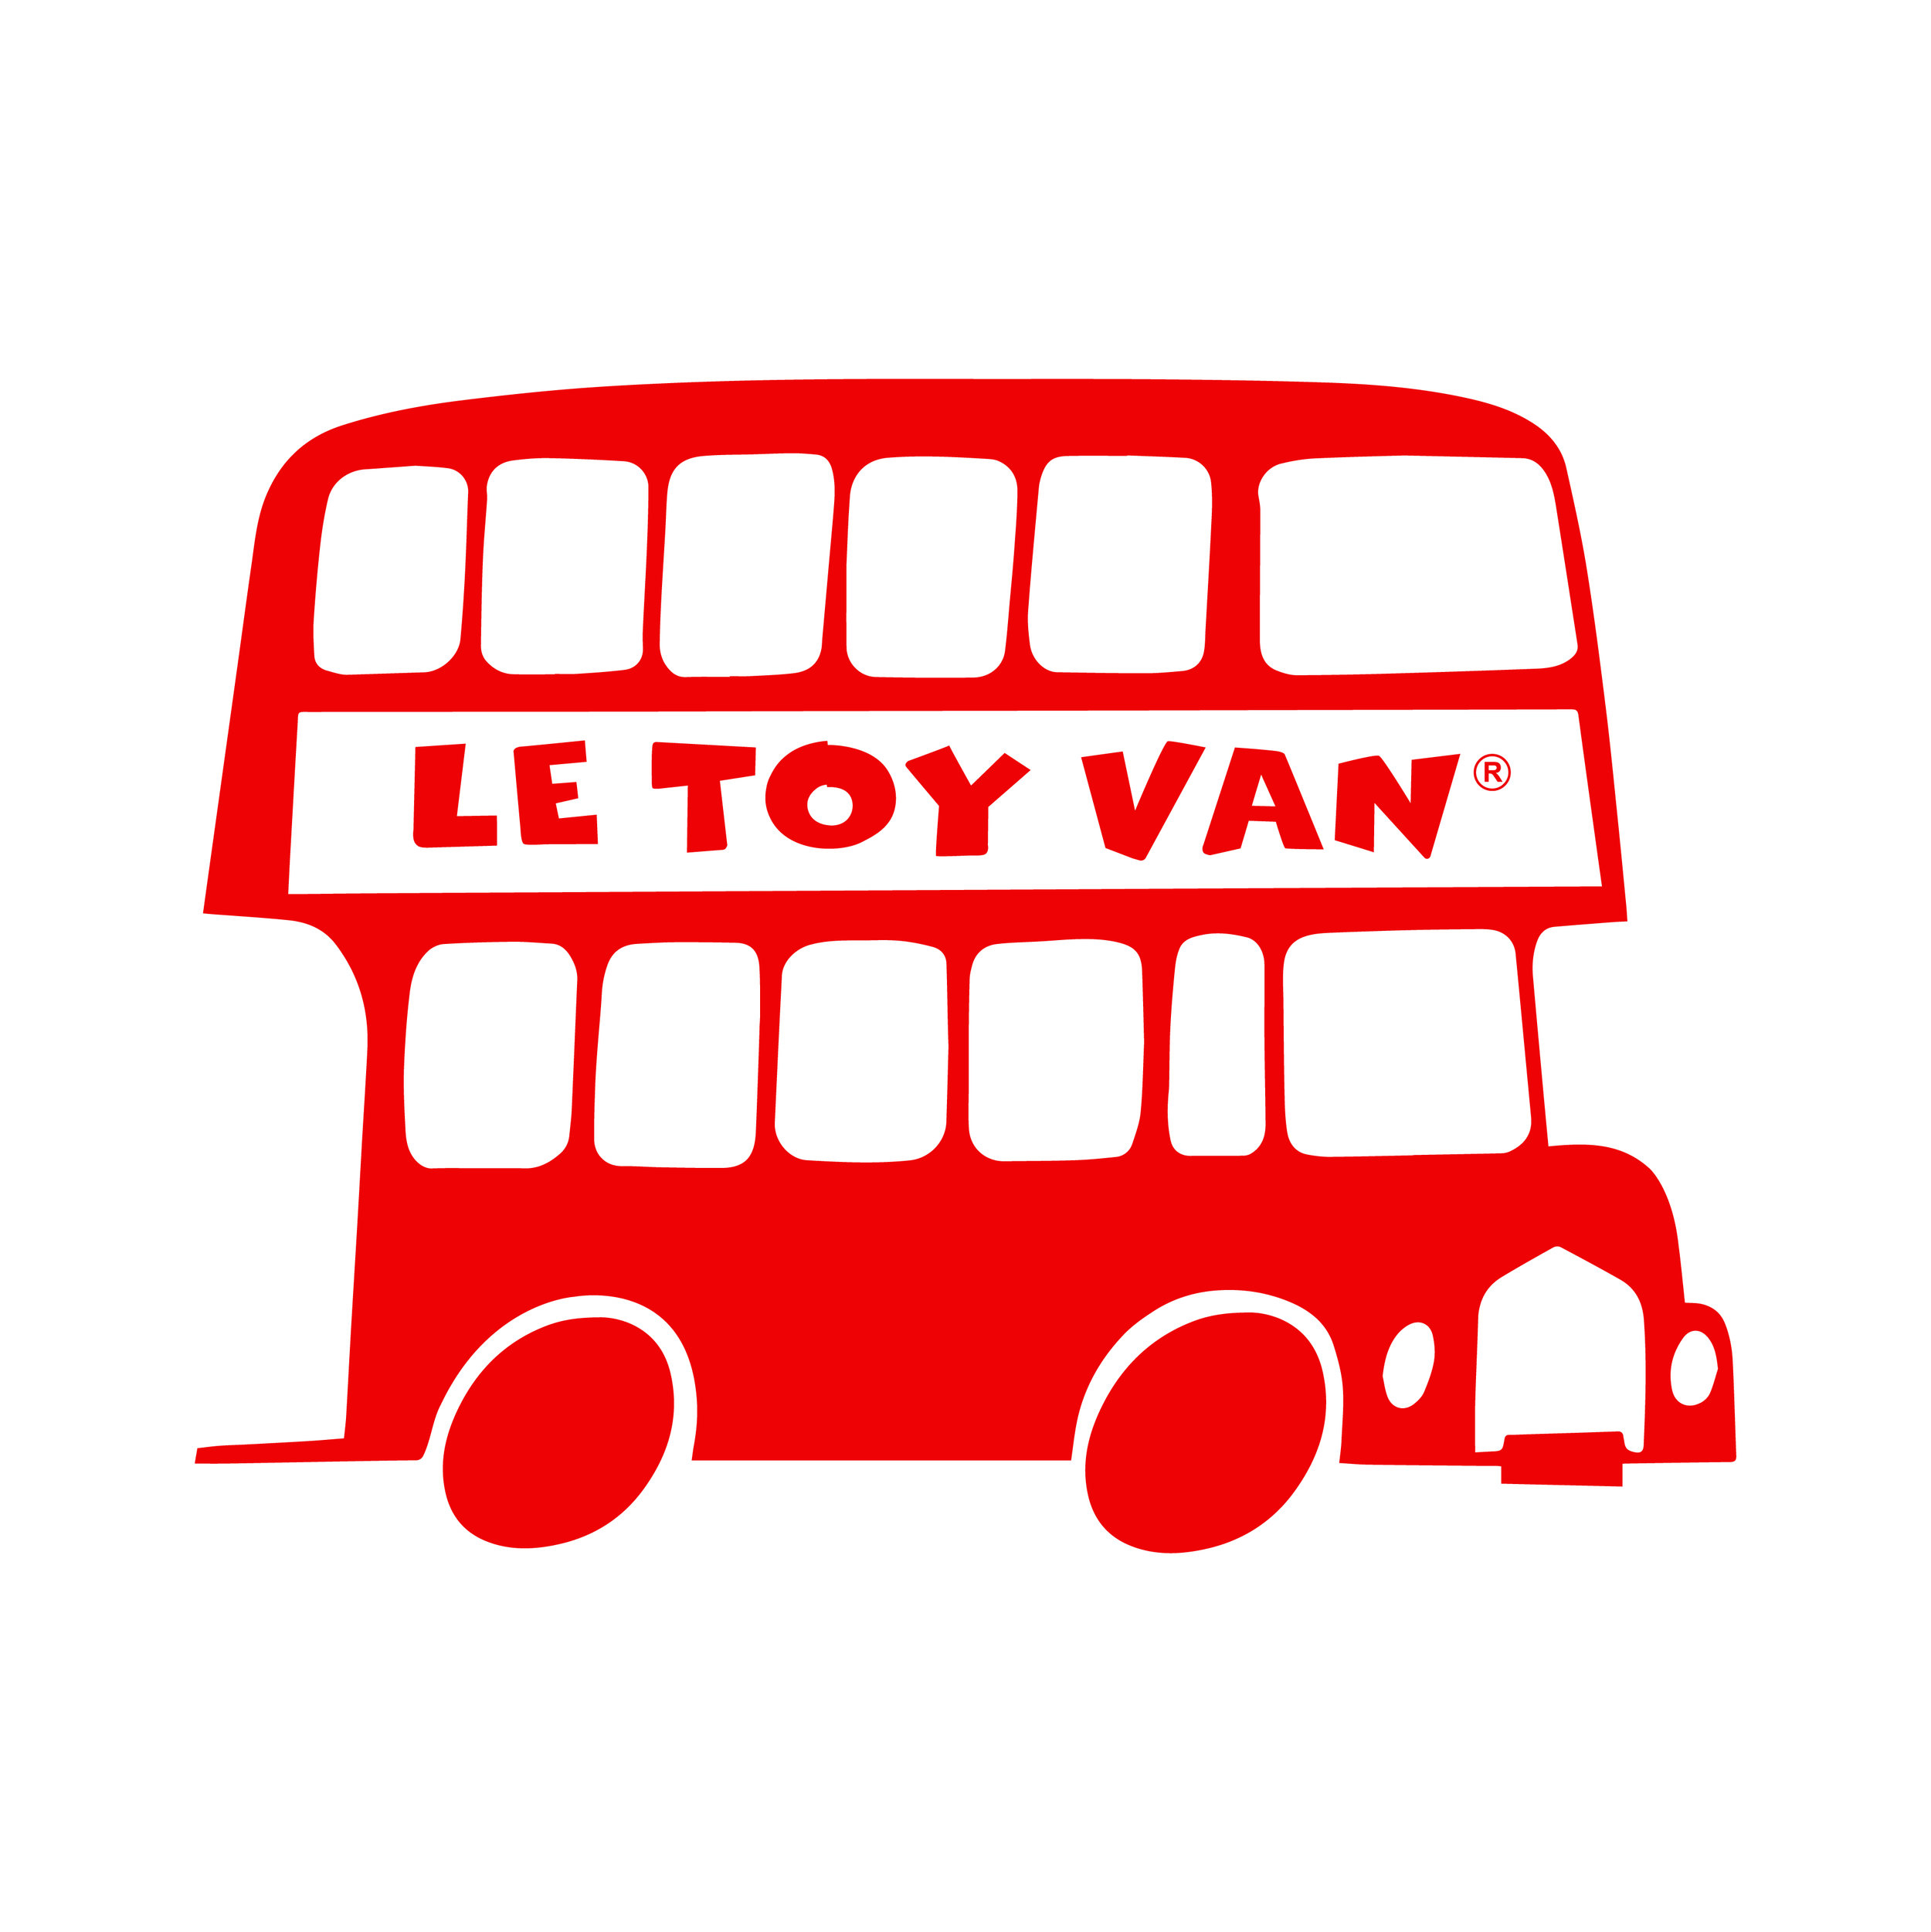 Le Toy Van - In 1995 Le Toy Van was founded in Surrey by Georges Le Van, later he was joined by his son, Stephen. Inspired by the understanding that children have little hands but big imaginations, Le Toy Van is passionate and proud to design innovative toys that encourage early learning throughout imaginative and role play.Their toys are ethically made by trusted partners. There are rigorous comprehensive quality, safety and sustainability programmes & certification in place. Using natural materials and an array of techniques, including replenishable, quality, smooth rubber-wood, hand screen printing, water staining. Their hand-finished toys are unique and we're sure your little hands will love them.